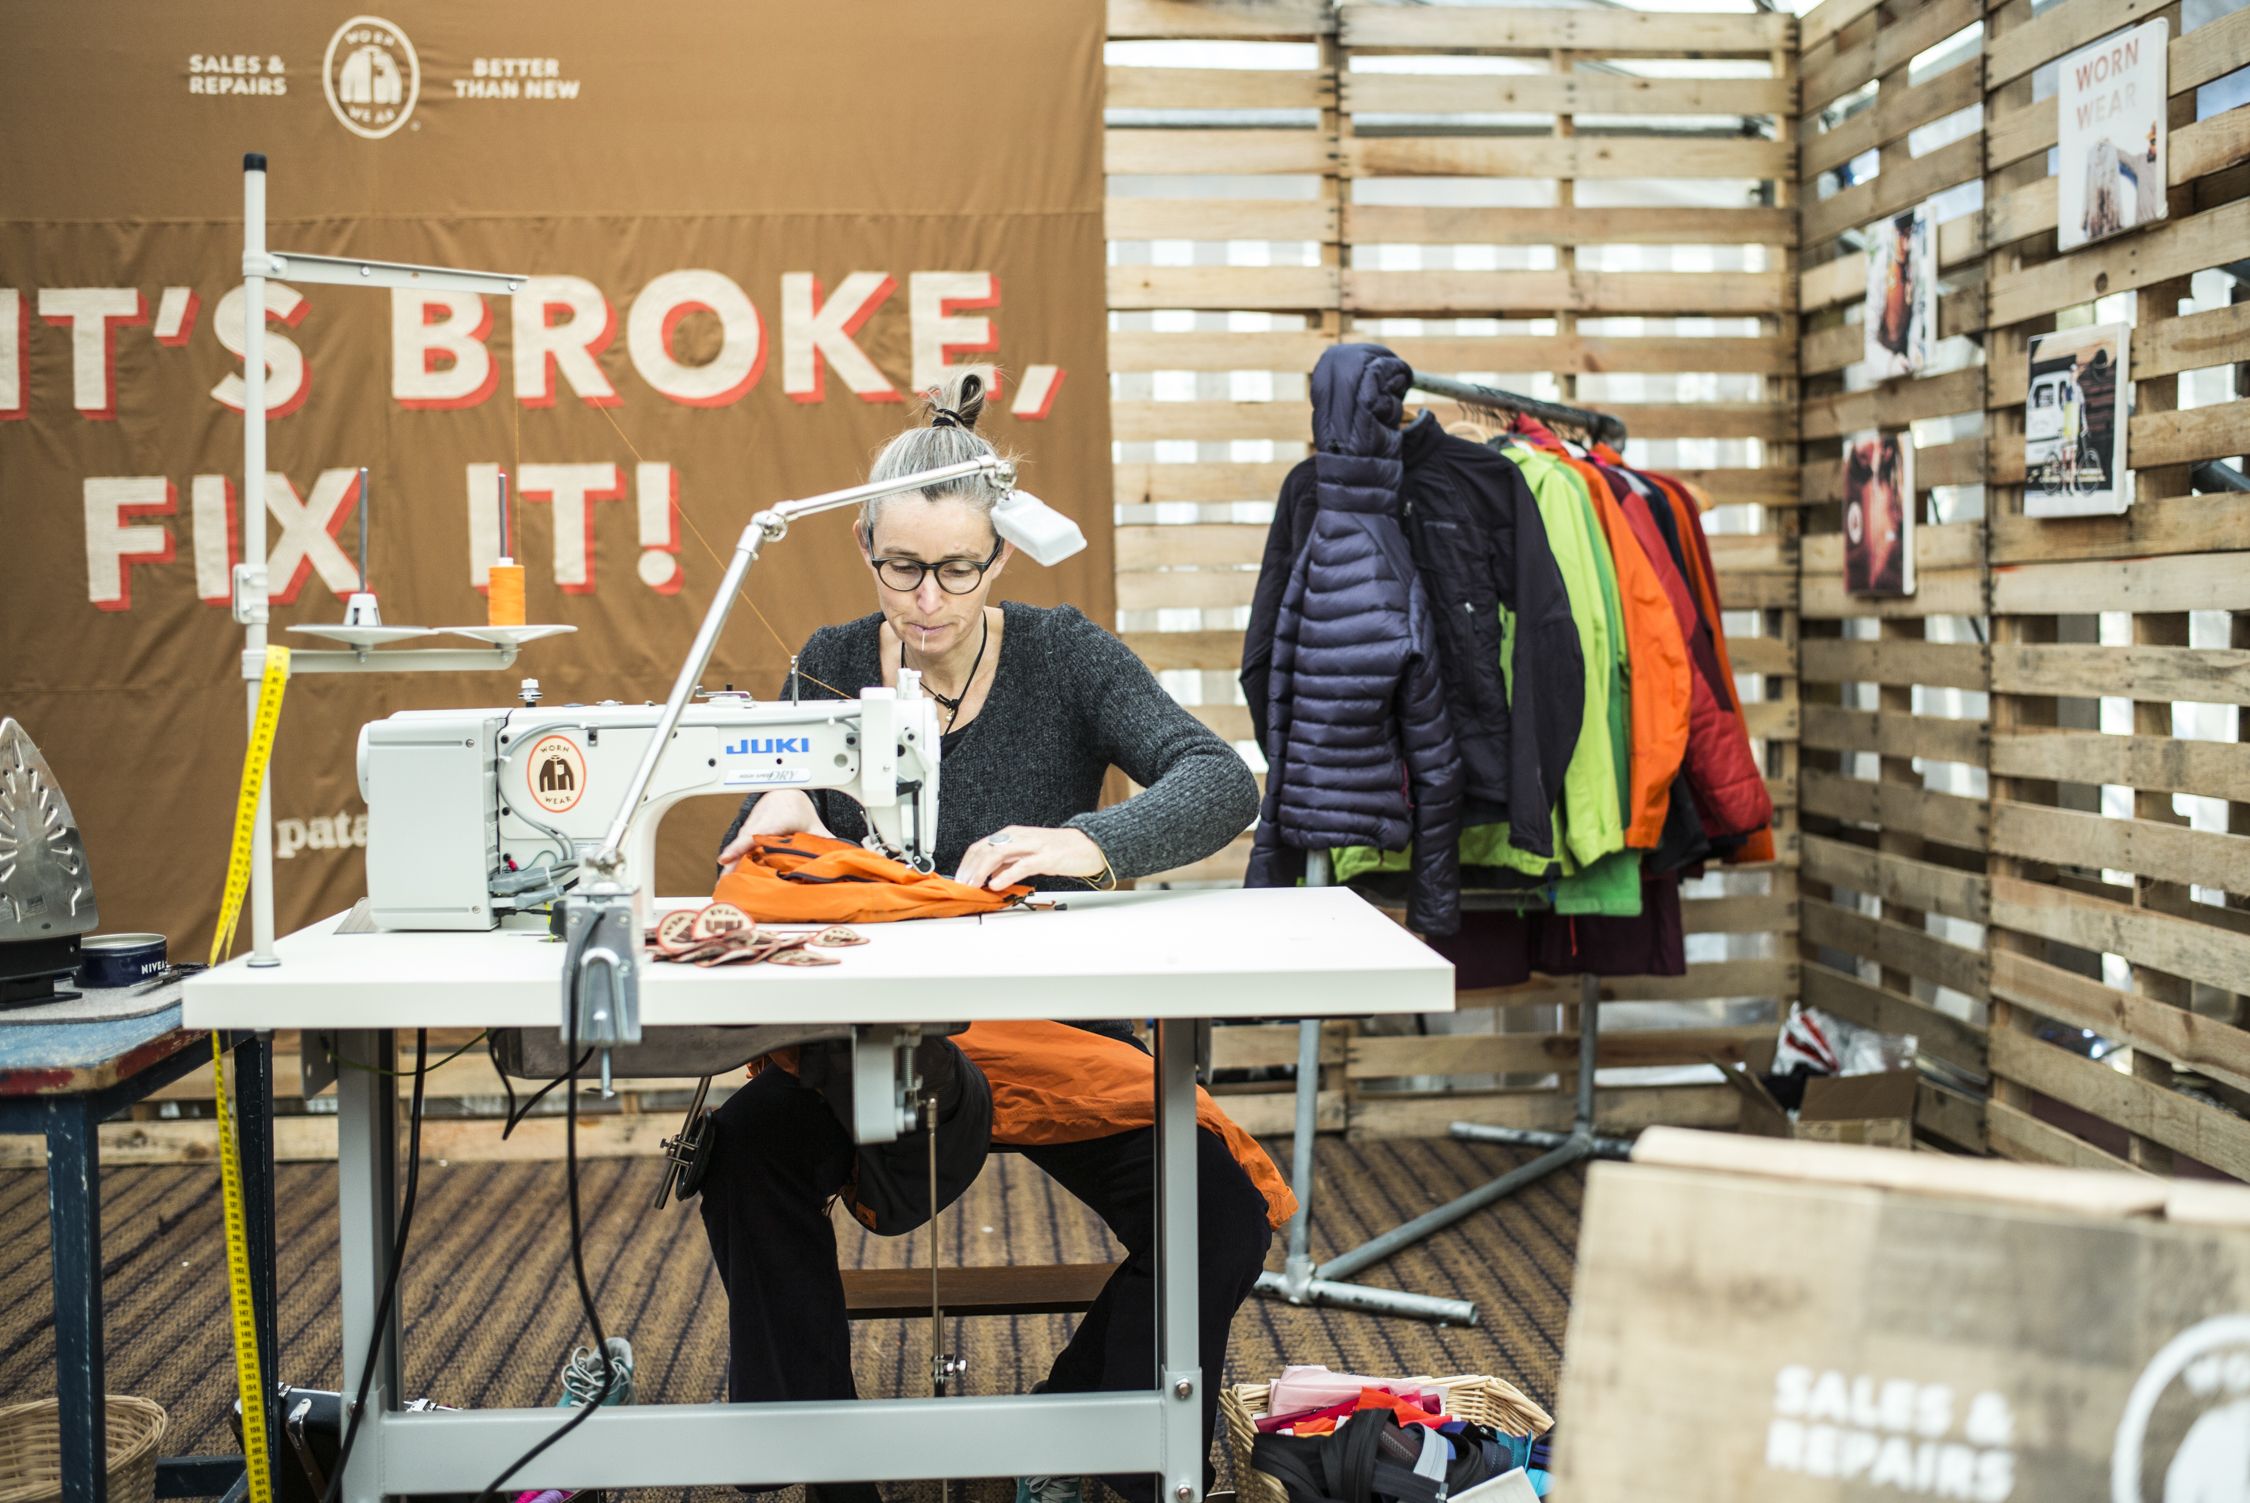 If it's broke, fix it! Worn Wear Tour Patagonia